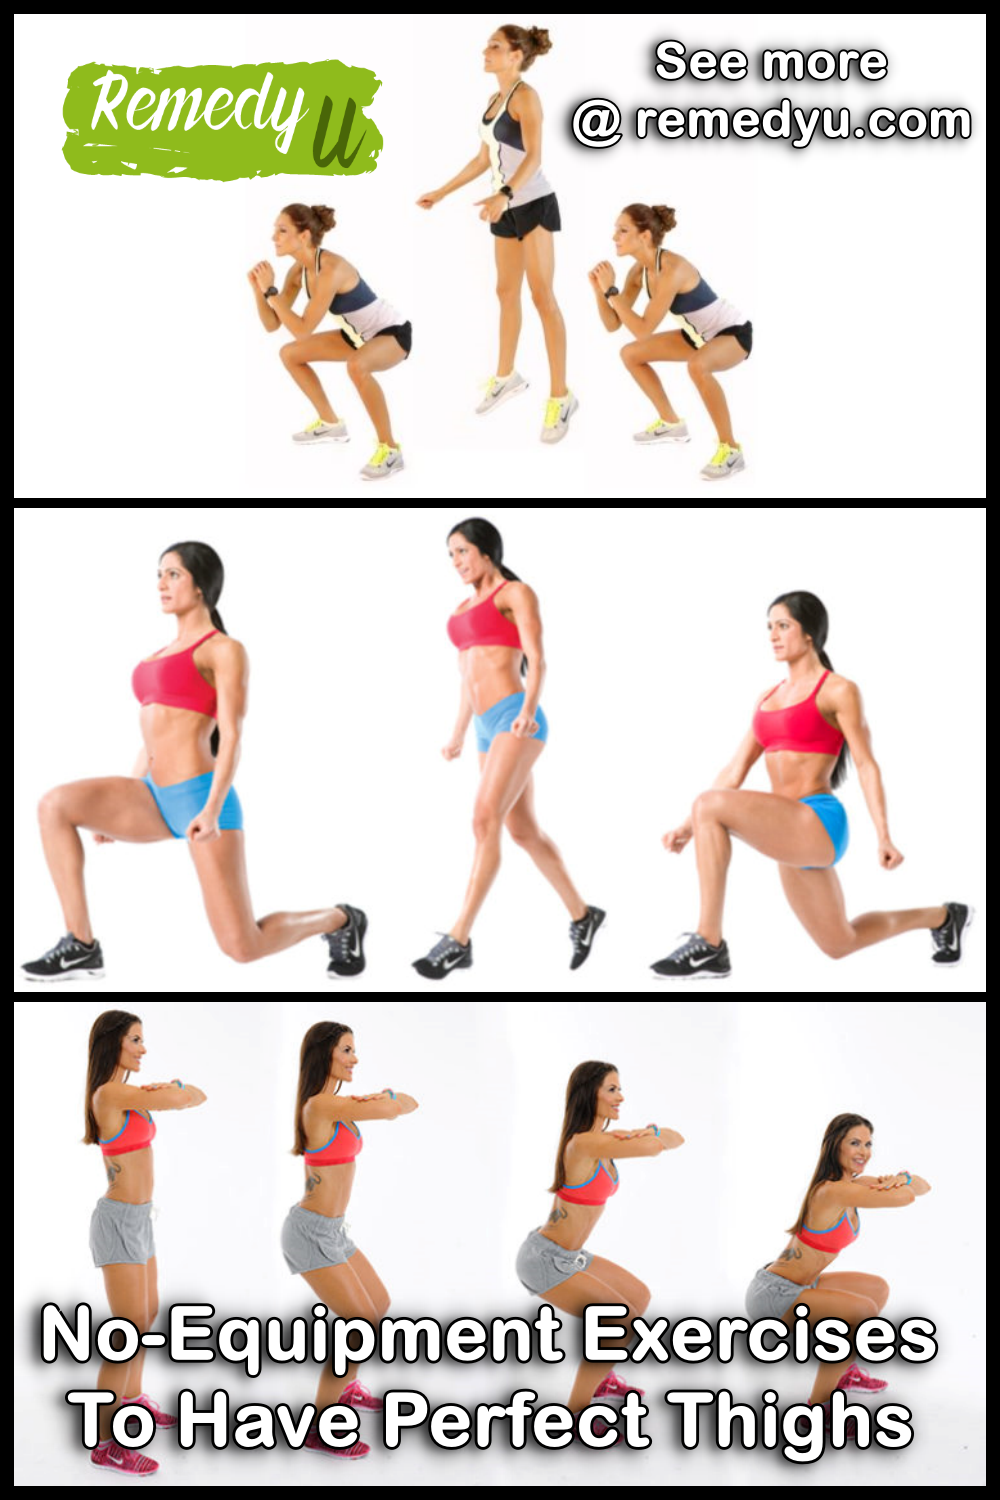 No-Equipment Exercises To Have Perfect Thighs